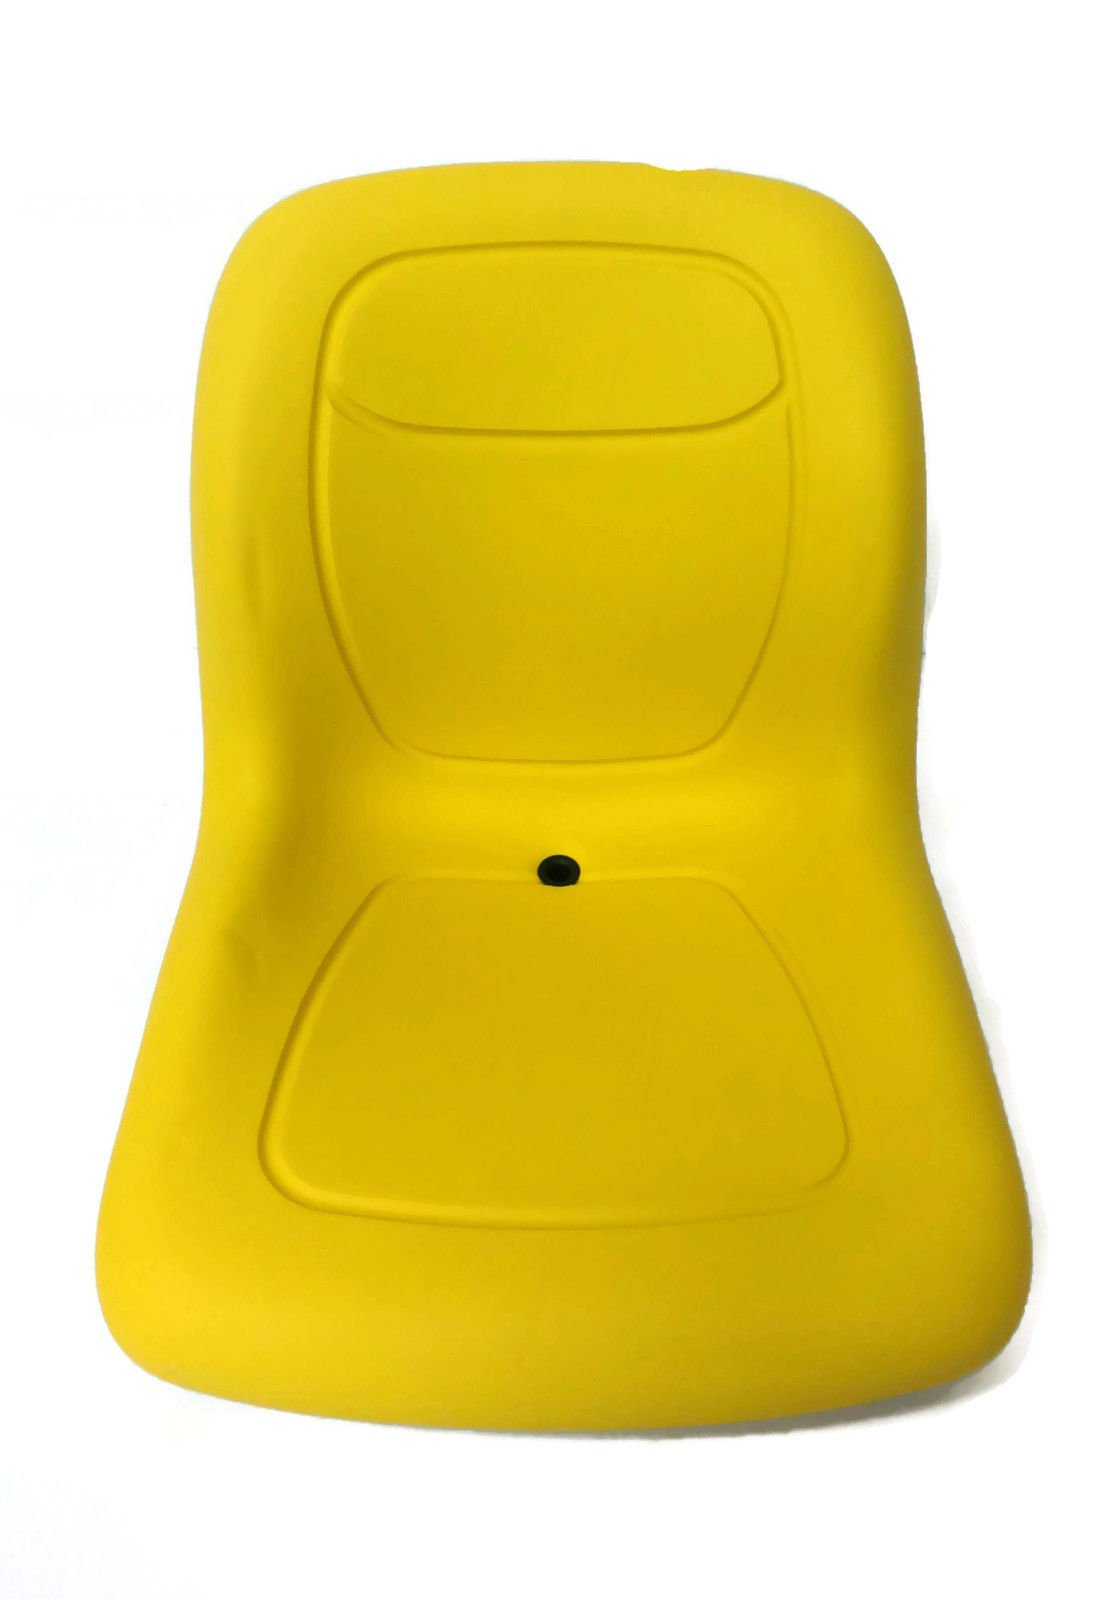 The ROP Shop Yellow HIGH Back SEAT w/Pivot Rod Bracket for John Deere 445 455 SST16 SST18 by The ROP Shop (Image #3)